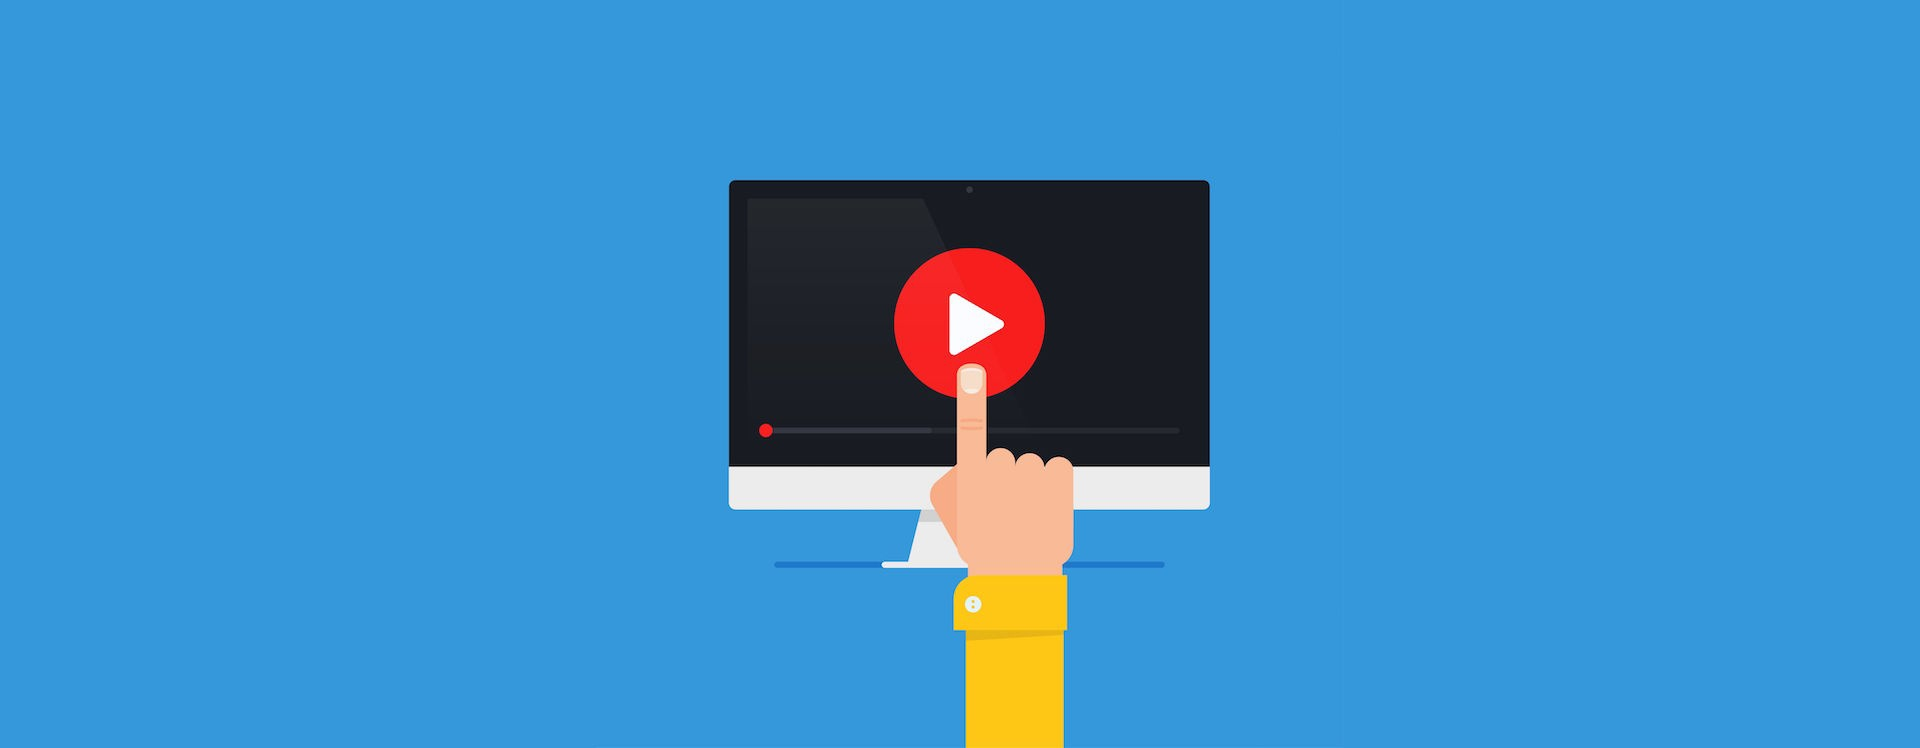 4 Ways to Start Implementing Video Into Your Marketing